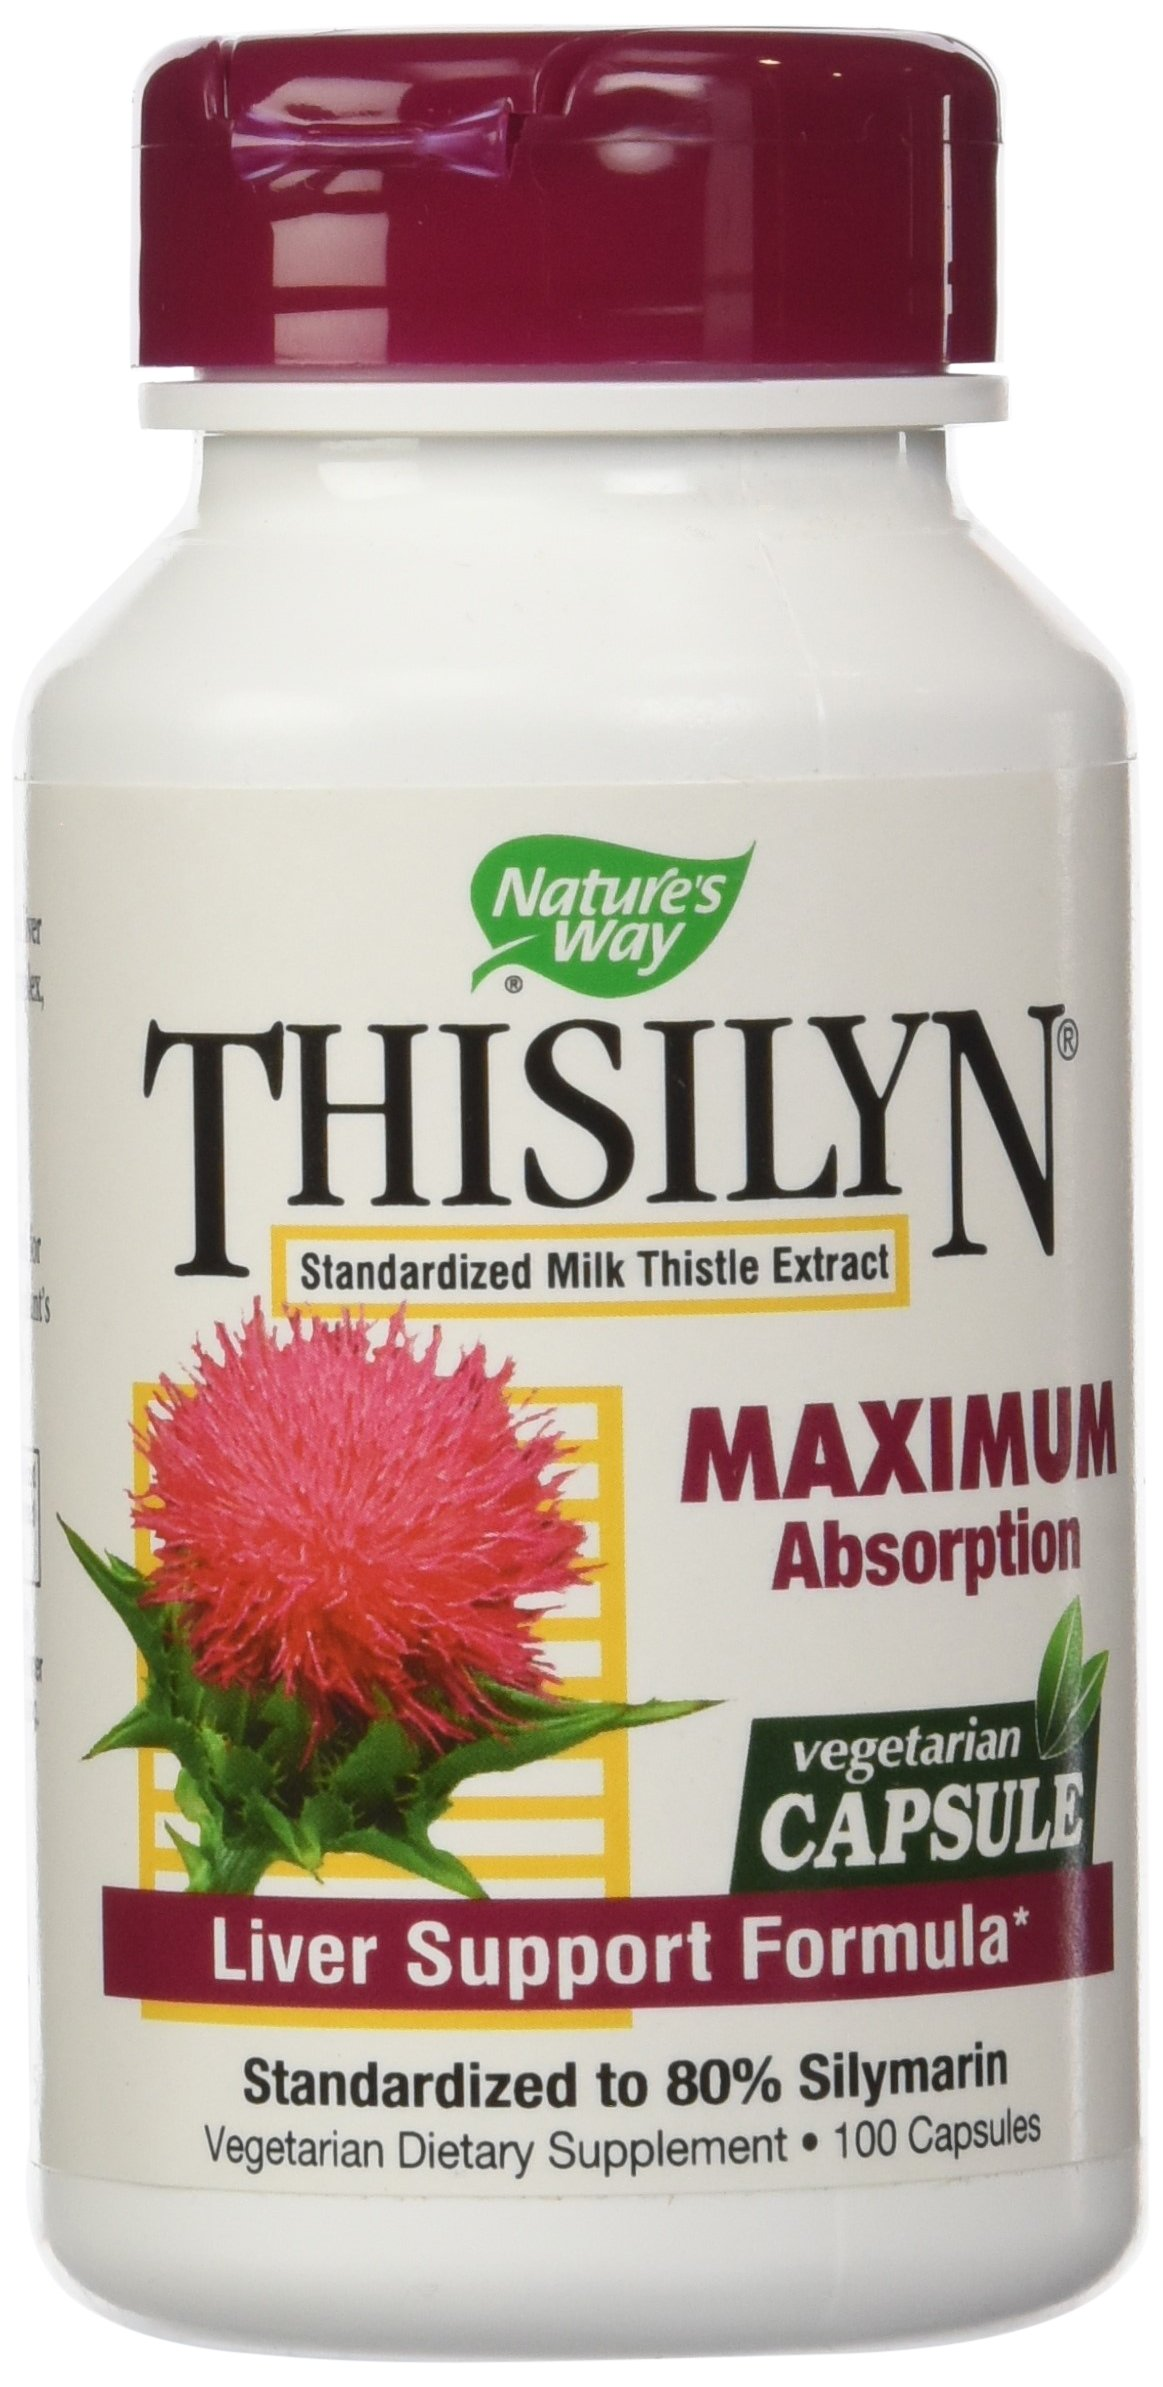 Nature's Way Thisilyn Milk Thistle 100 Vcaps, 2 Count